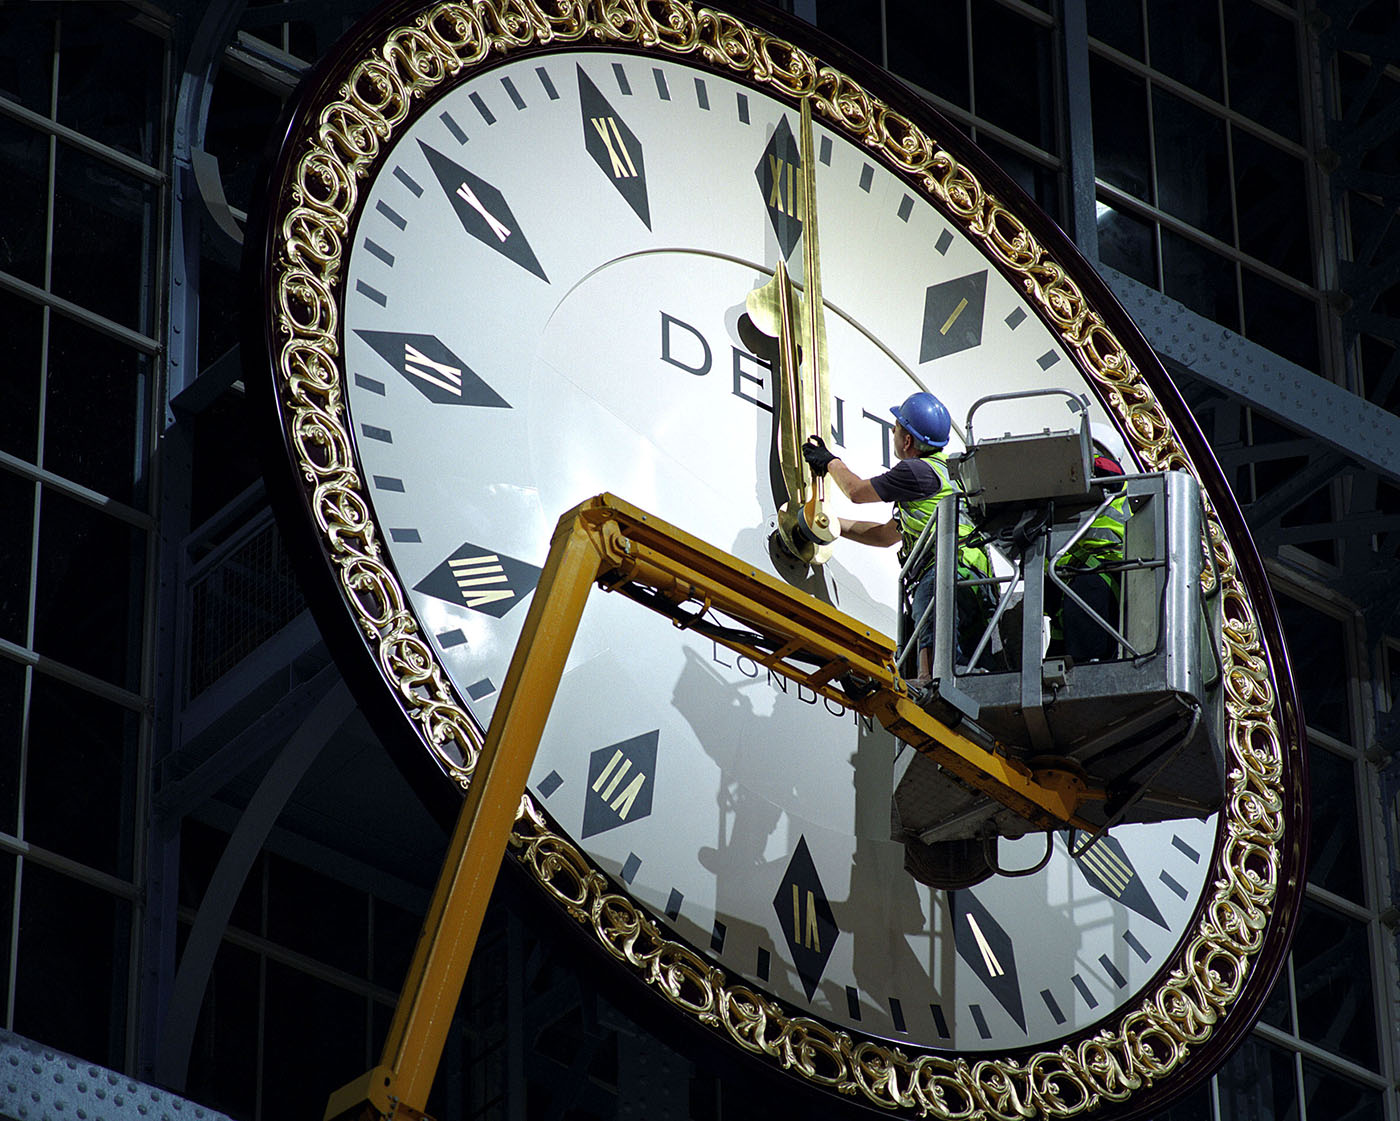 A replica Dent Clock is put into place in the newly restored Barlow Shed at St Pancras International. The original clock is owned by 91 year old Roland Hoggard, who rescued and restored it after it was smashed to pieces as it was removed from the station in the 1970s.